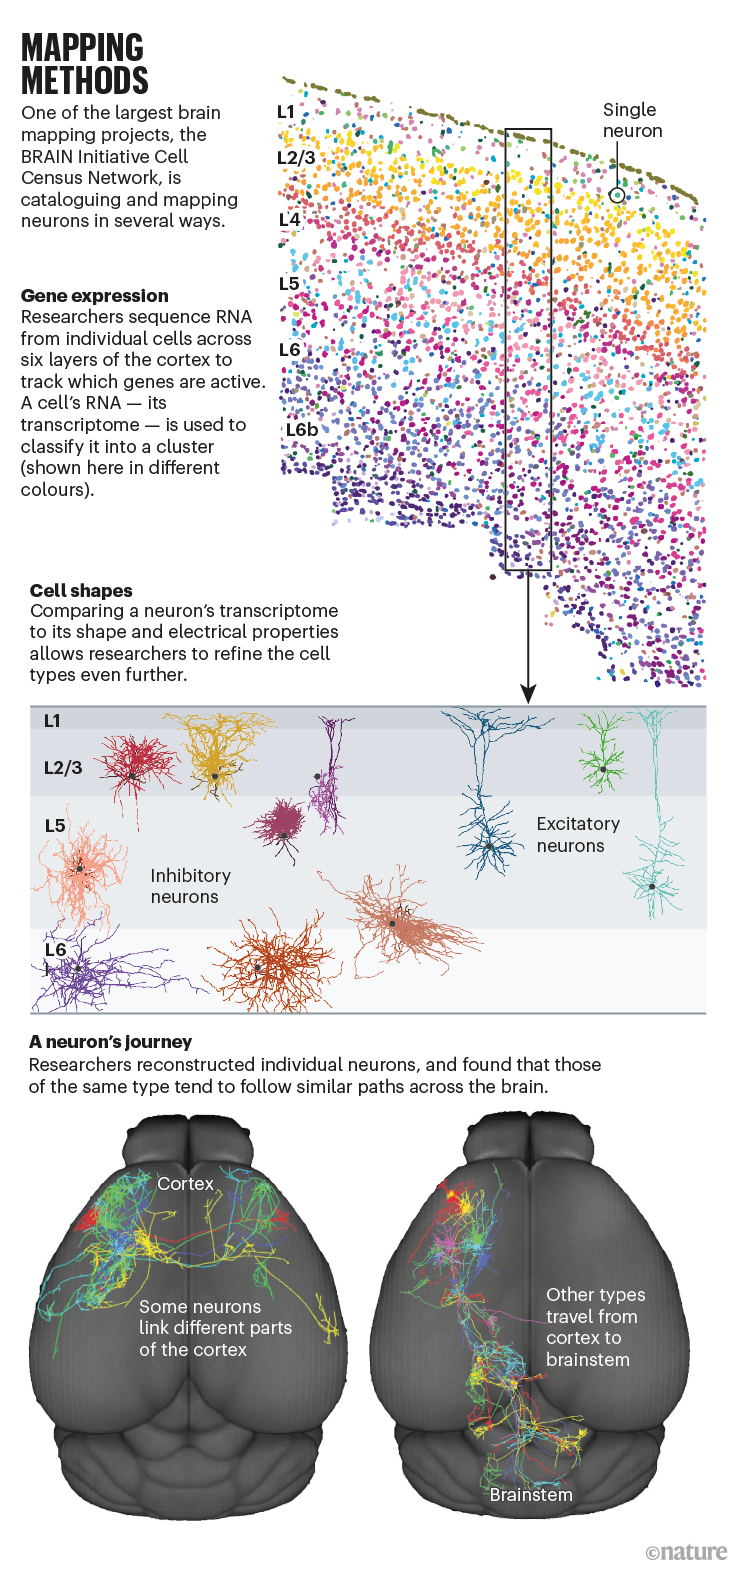 MAPPING METHODS: infographic showing how the BRAIN initiative Cell Census Network catalogues and maps neurons